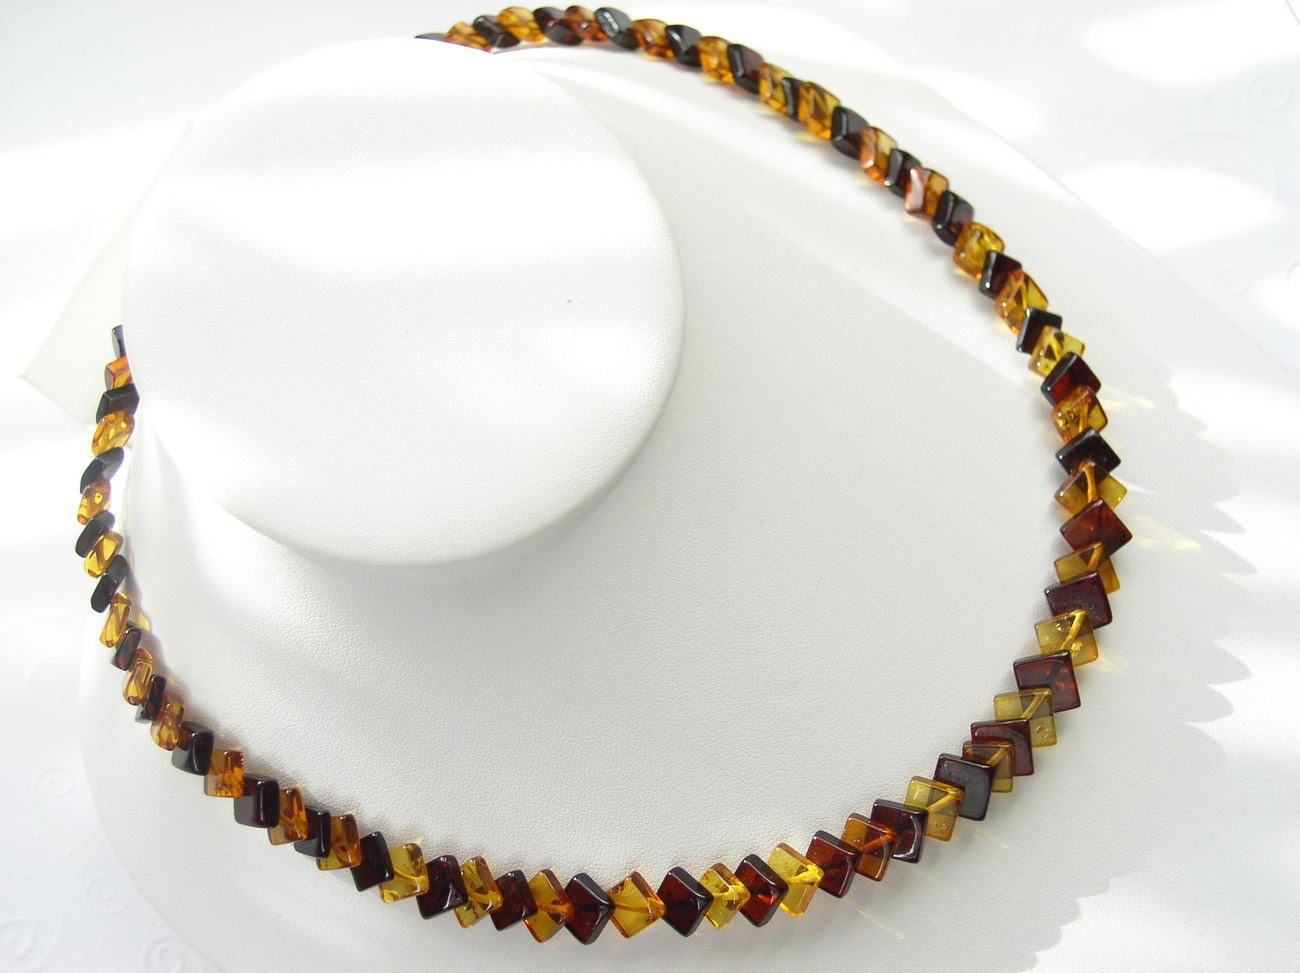 Gorgeous Natural Baltic Amber Diamond Shaped Beads Necklace